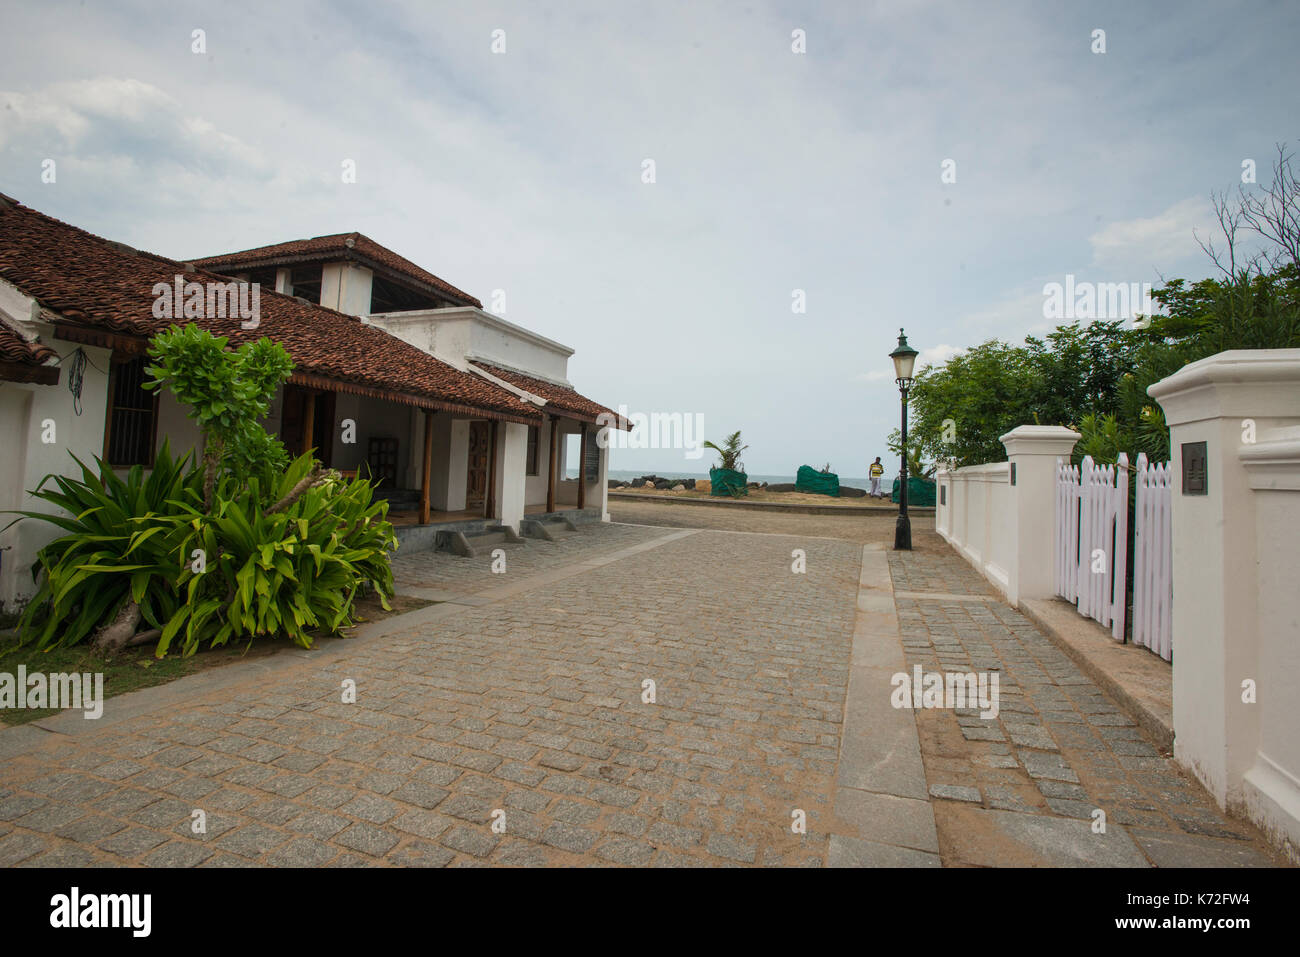 Charming Colonial Bungalows Renovated At Goldsmith Street In Tranquebar Tamil Nadu India